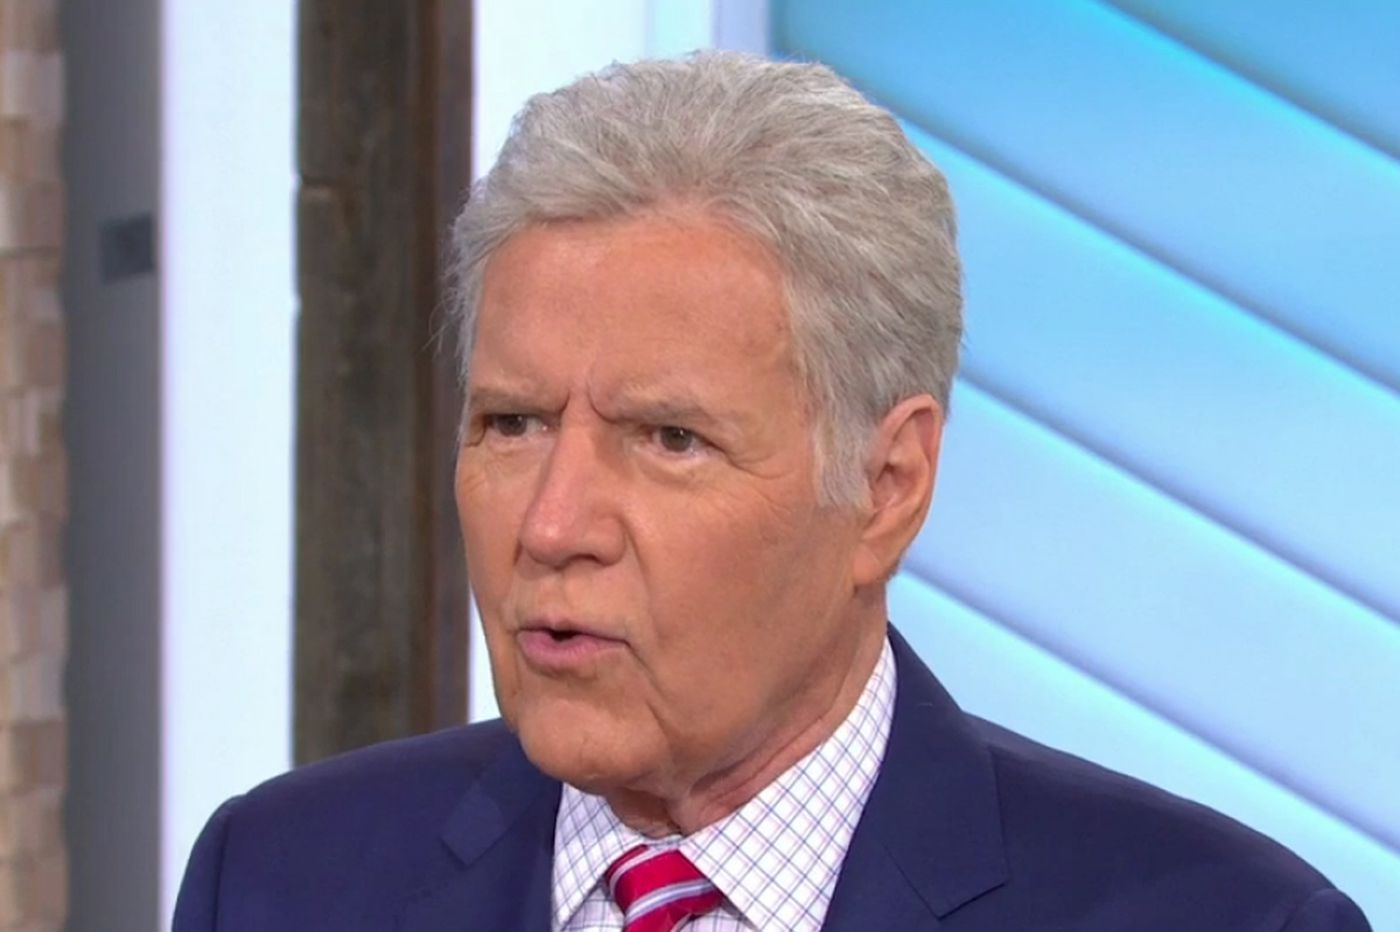 Alex Trebek Opens Up About 'Deep Sadness' During Cancer Treatment